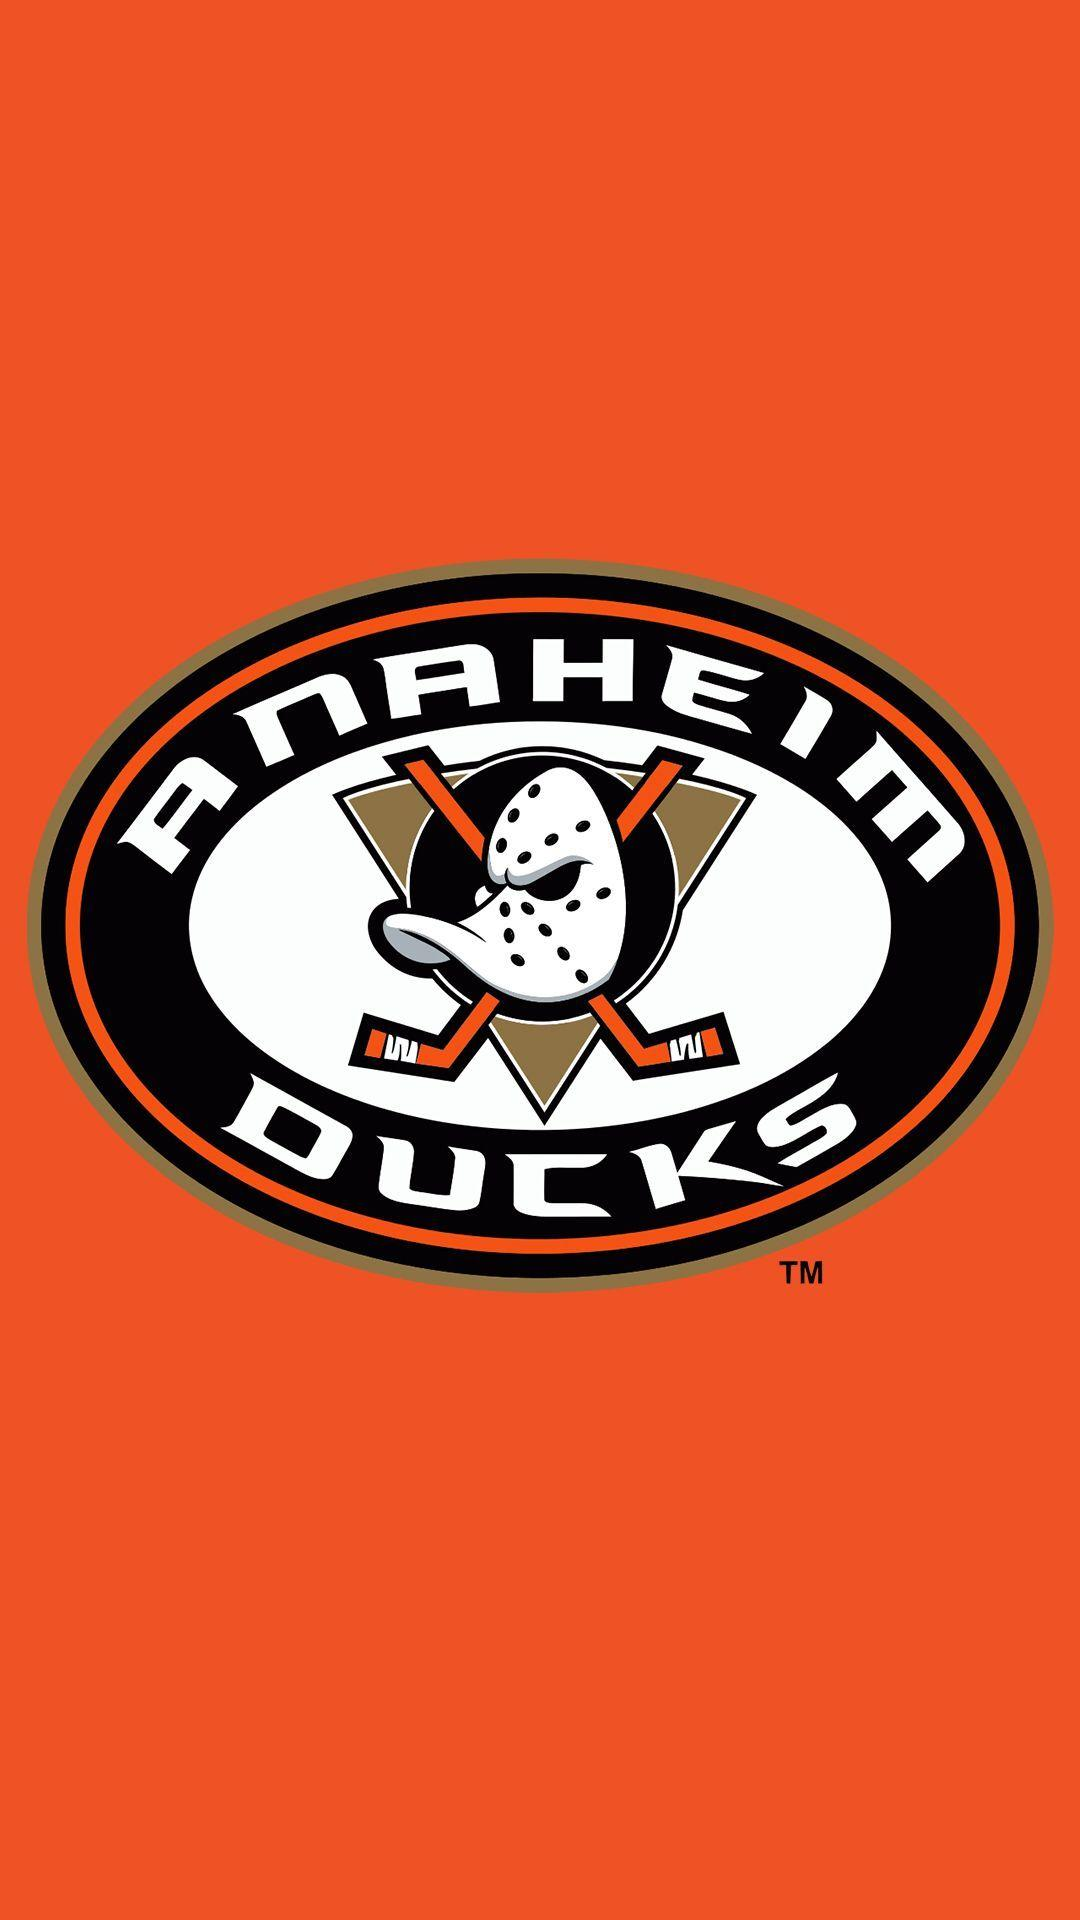 Anaheim Ducks iPhone 6 plus wallpapers created by me